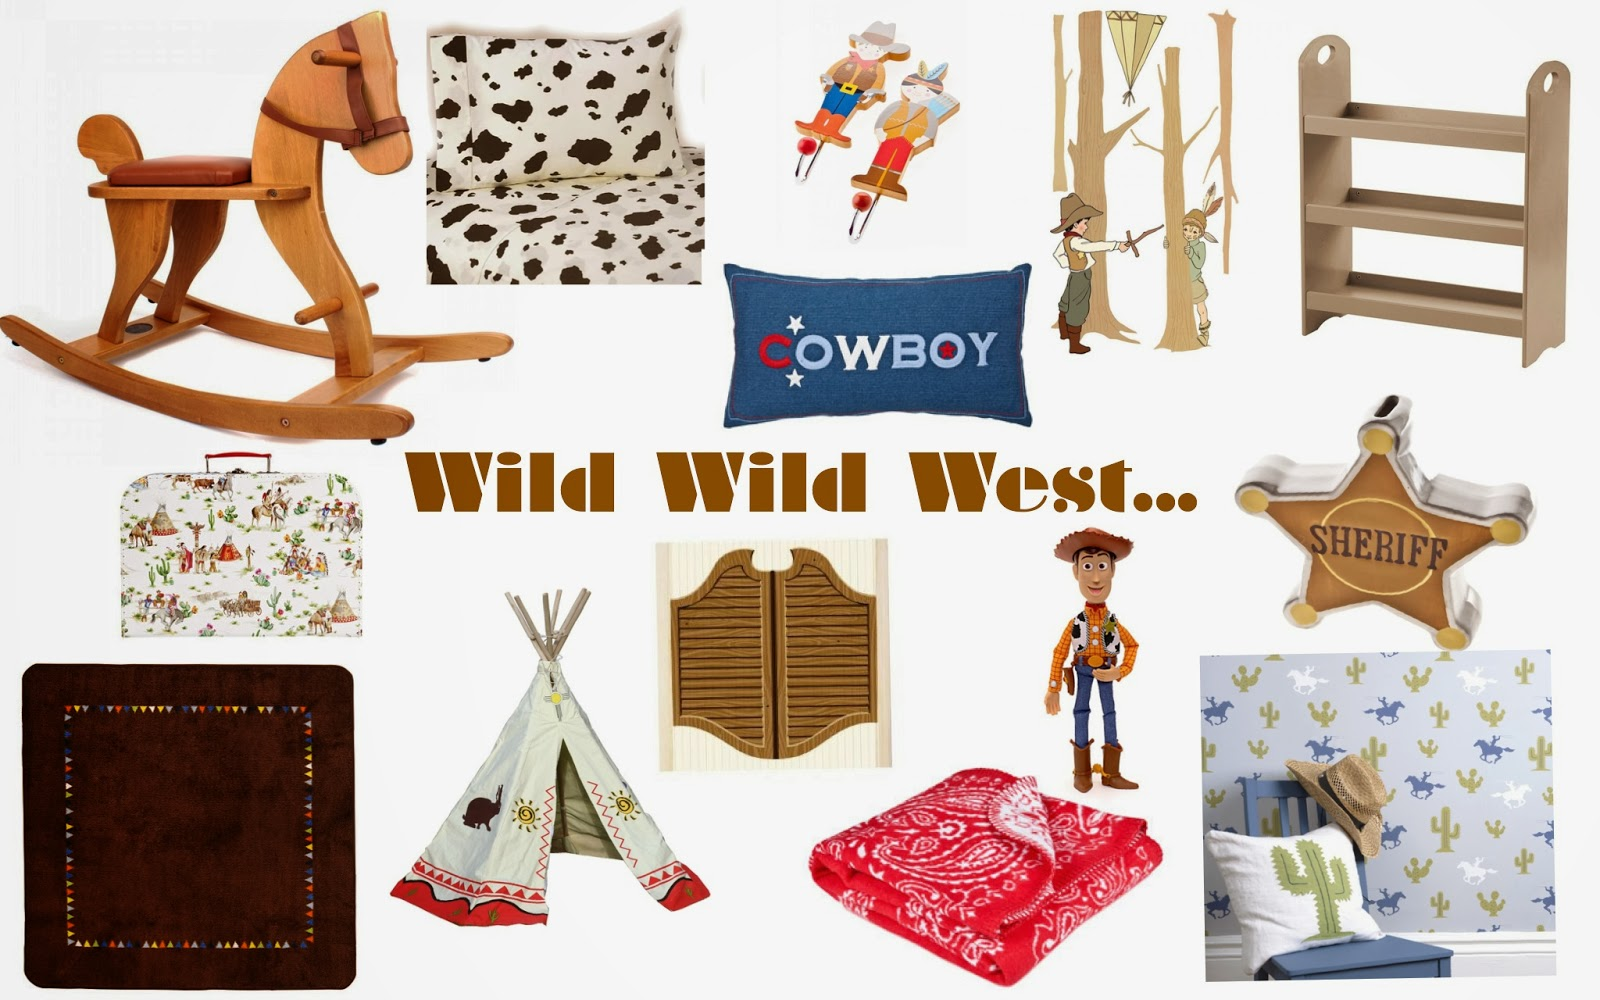 mamasVIB | V. I. BUYS : A wild, wild west kids bedroom inspired by new Disney Junior cartoon Sheriff Callie! | A wild, wild west kids bedroom | new Disney Junior cartoon Sheriff Callie's wild west | disney junior | kids bedroom | homewards | stylish kids bedrooms | cowboys and cowgirls | wild west | Cartoon | mandy moore | disney | zara home | mamasVIB | cowboy bedding | cowboy home buys | bedroom